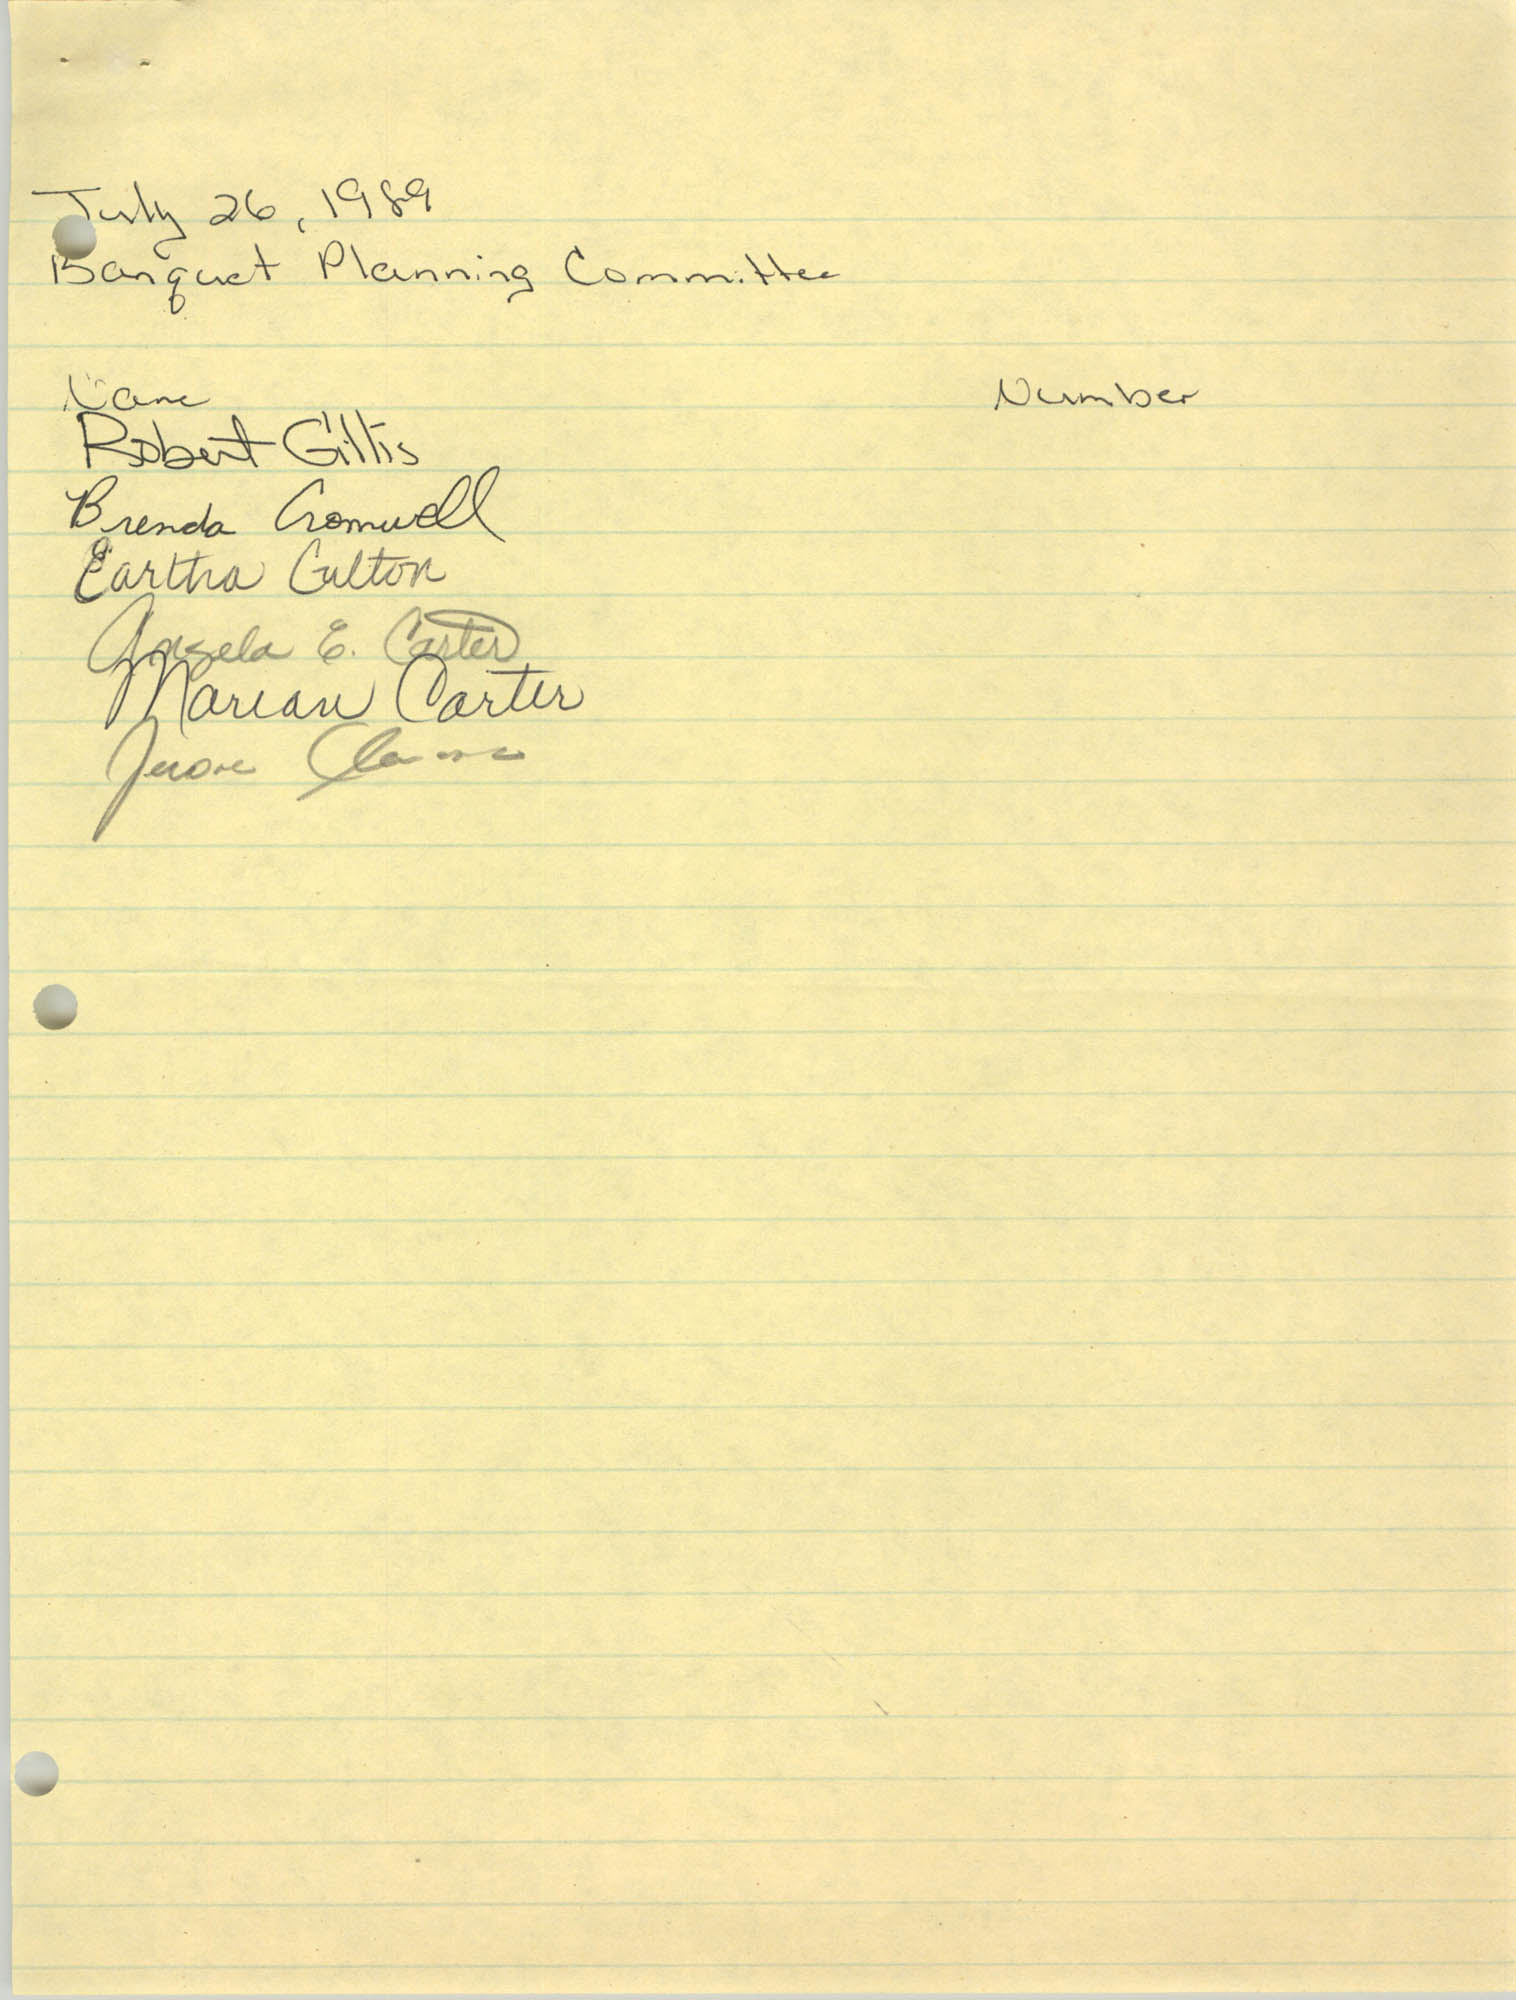 Handwritten List of Names, Banquet Planning Committee, July 26, 1989